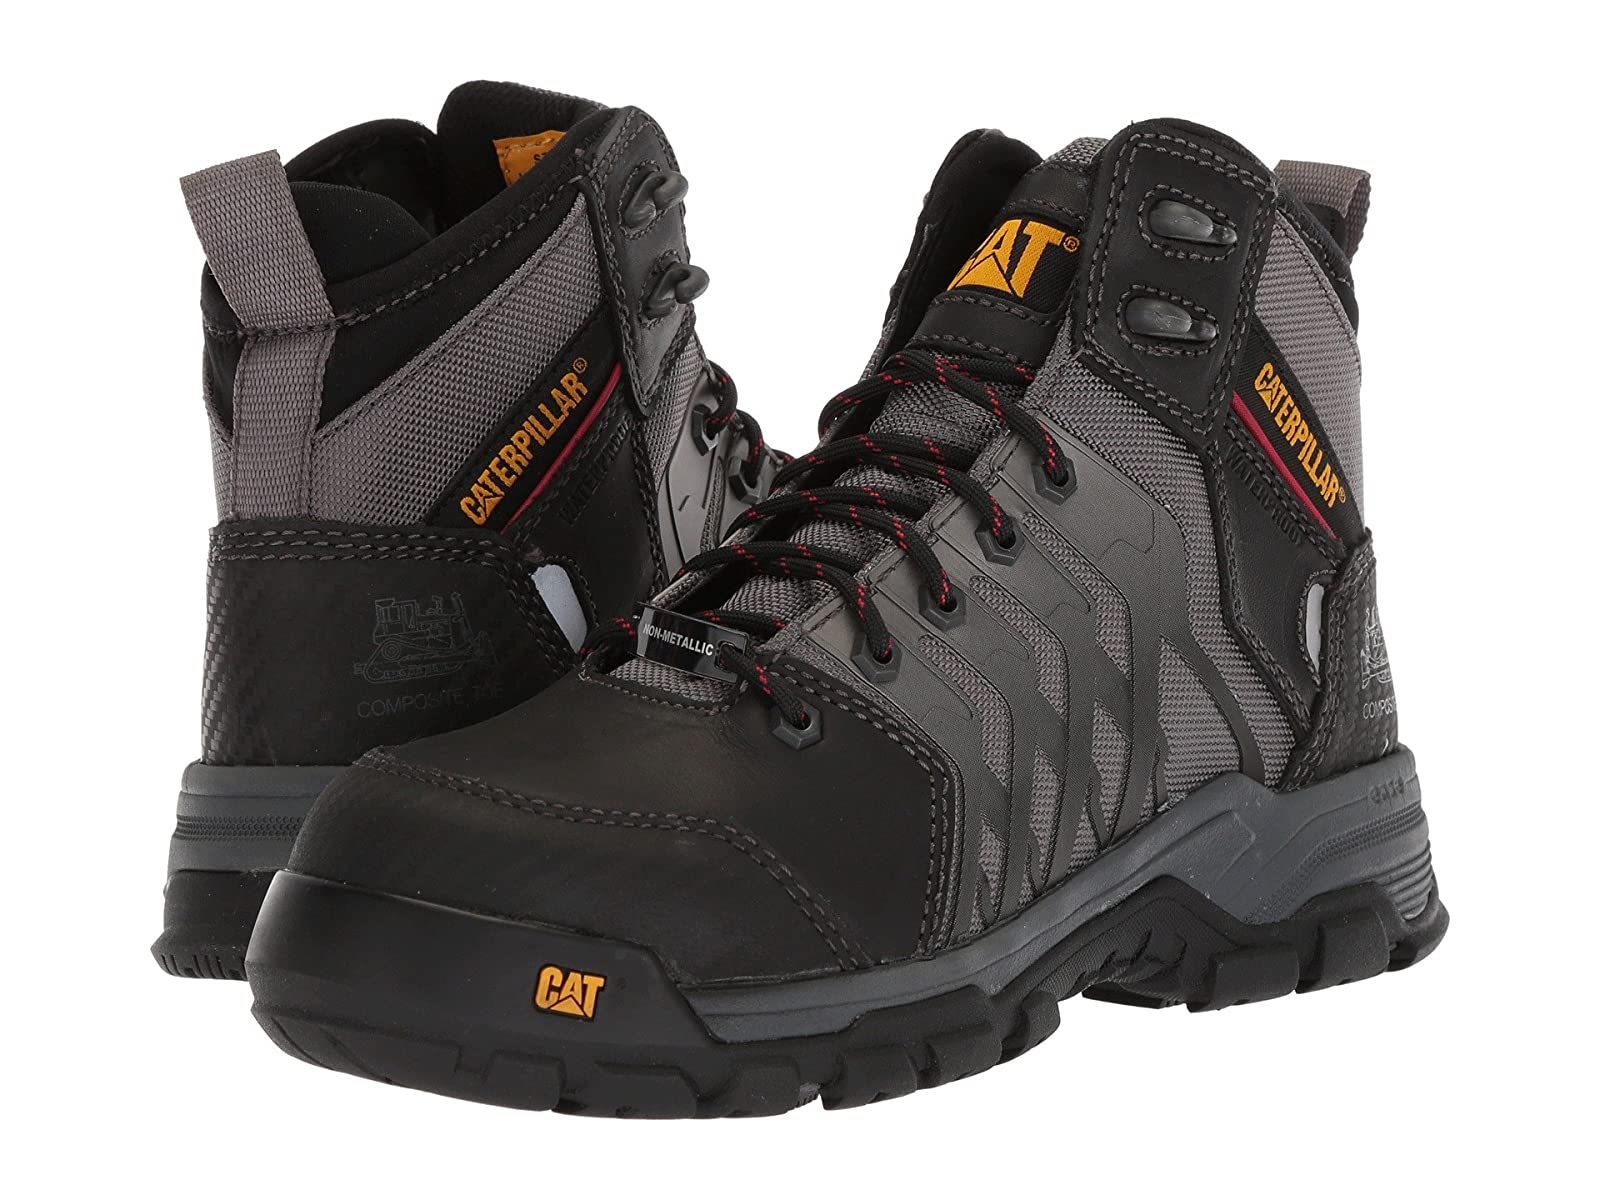 Caterpillar Induction Waterproof Nano ToeSelling fashionable and eye-catching shoes